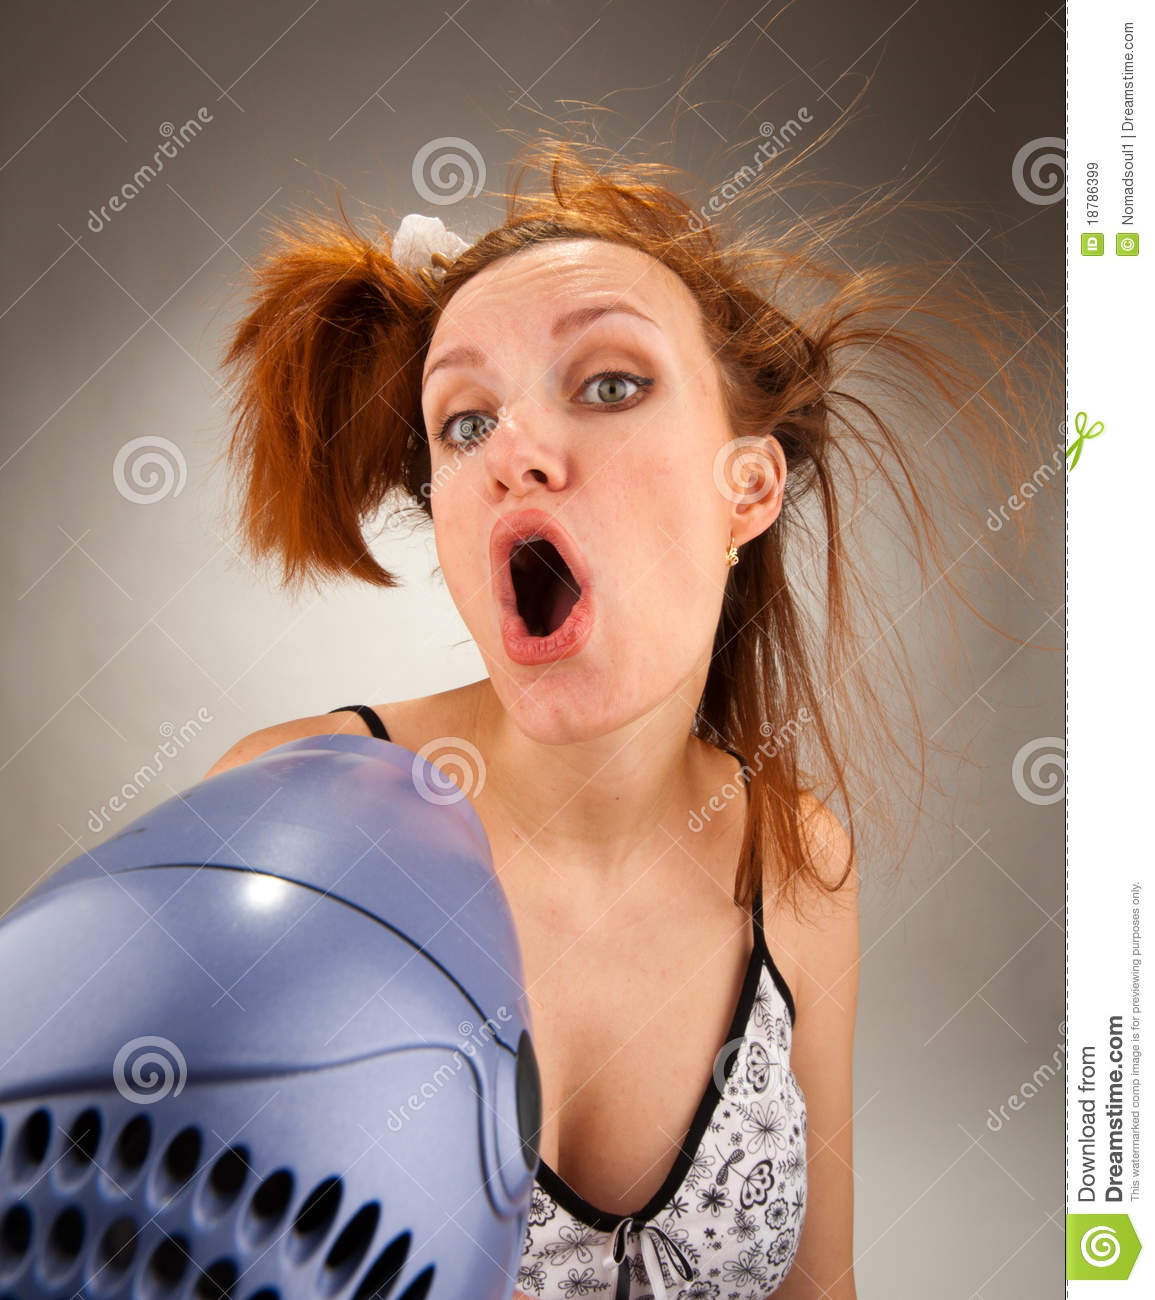 Housewife singing with hair dryer